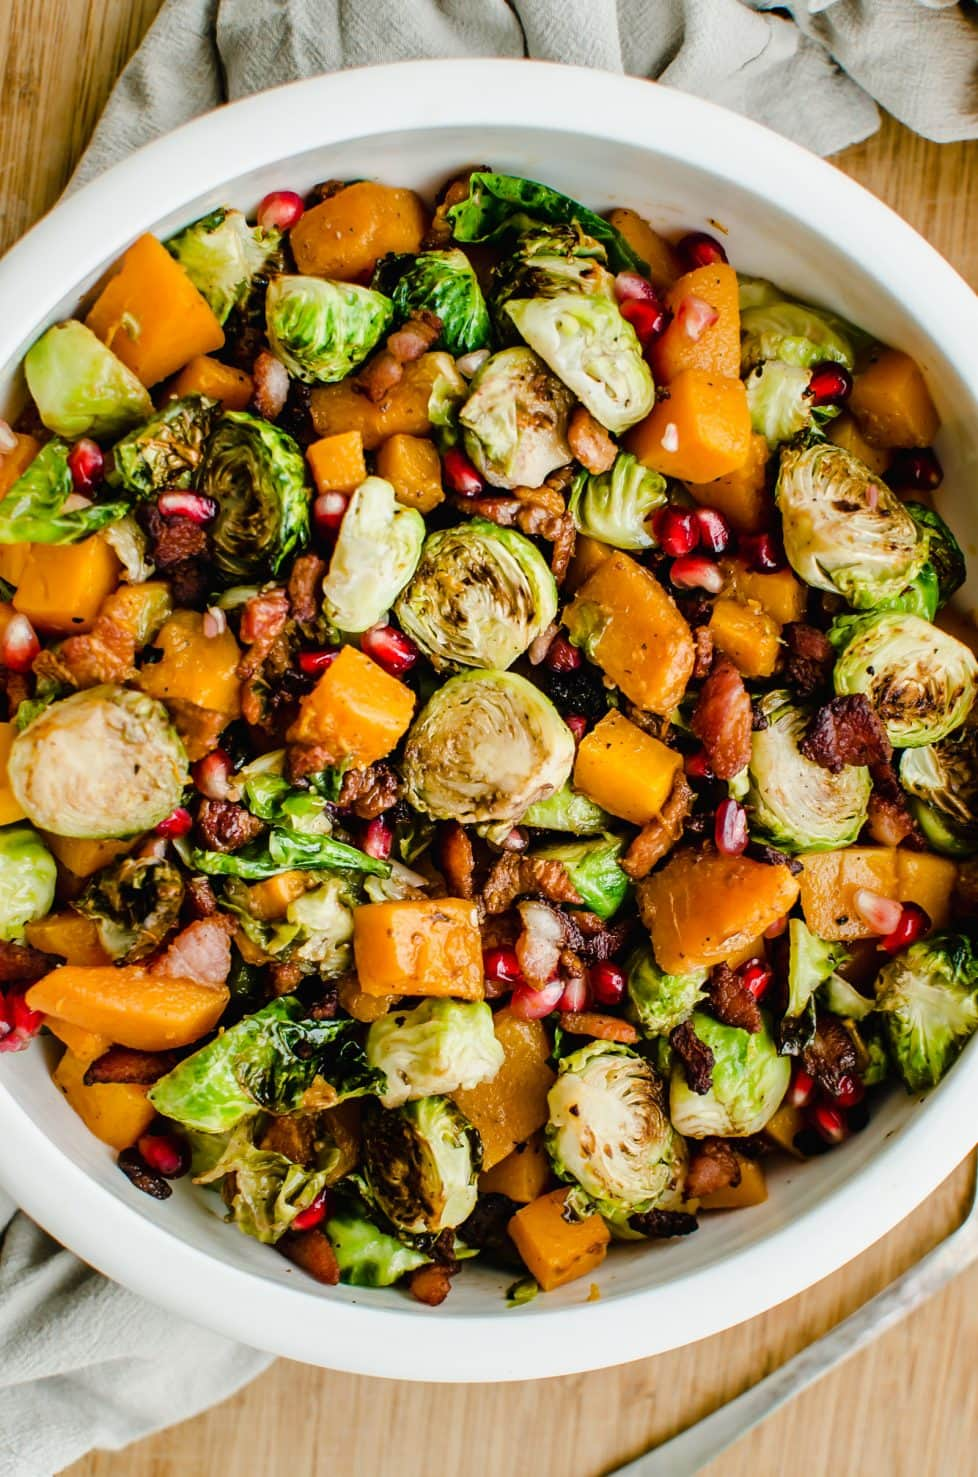 A close-up overhead shot of a white bowl filled with roasted brussels sprouts, butternut squash, and pomegranate arils.